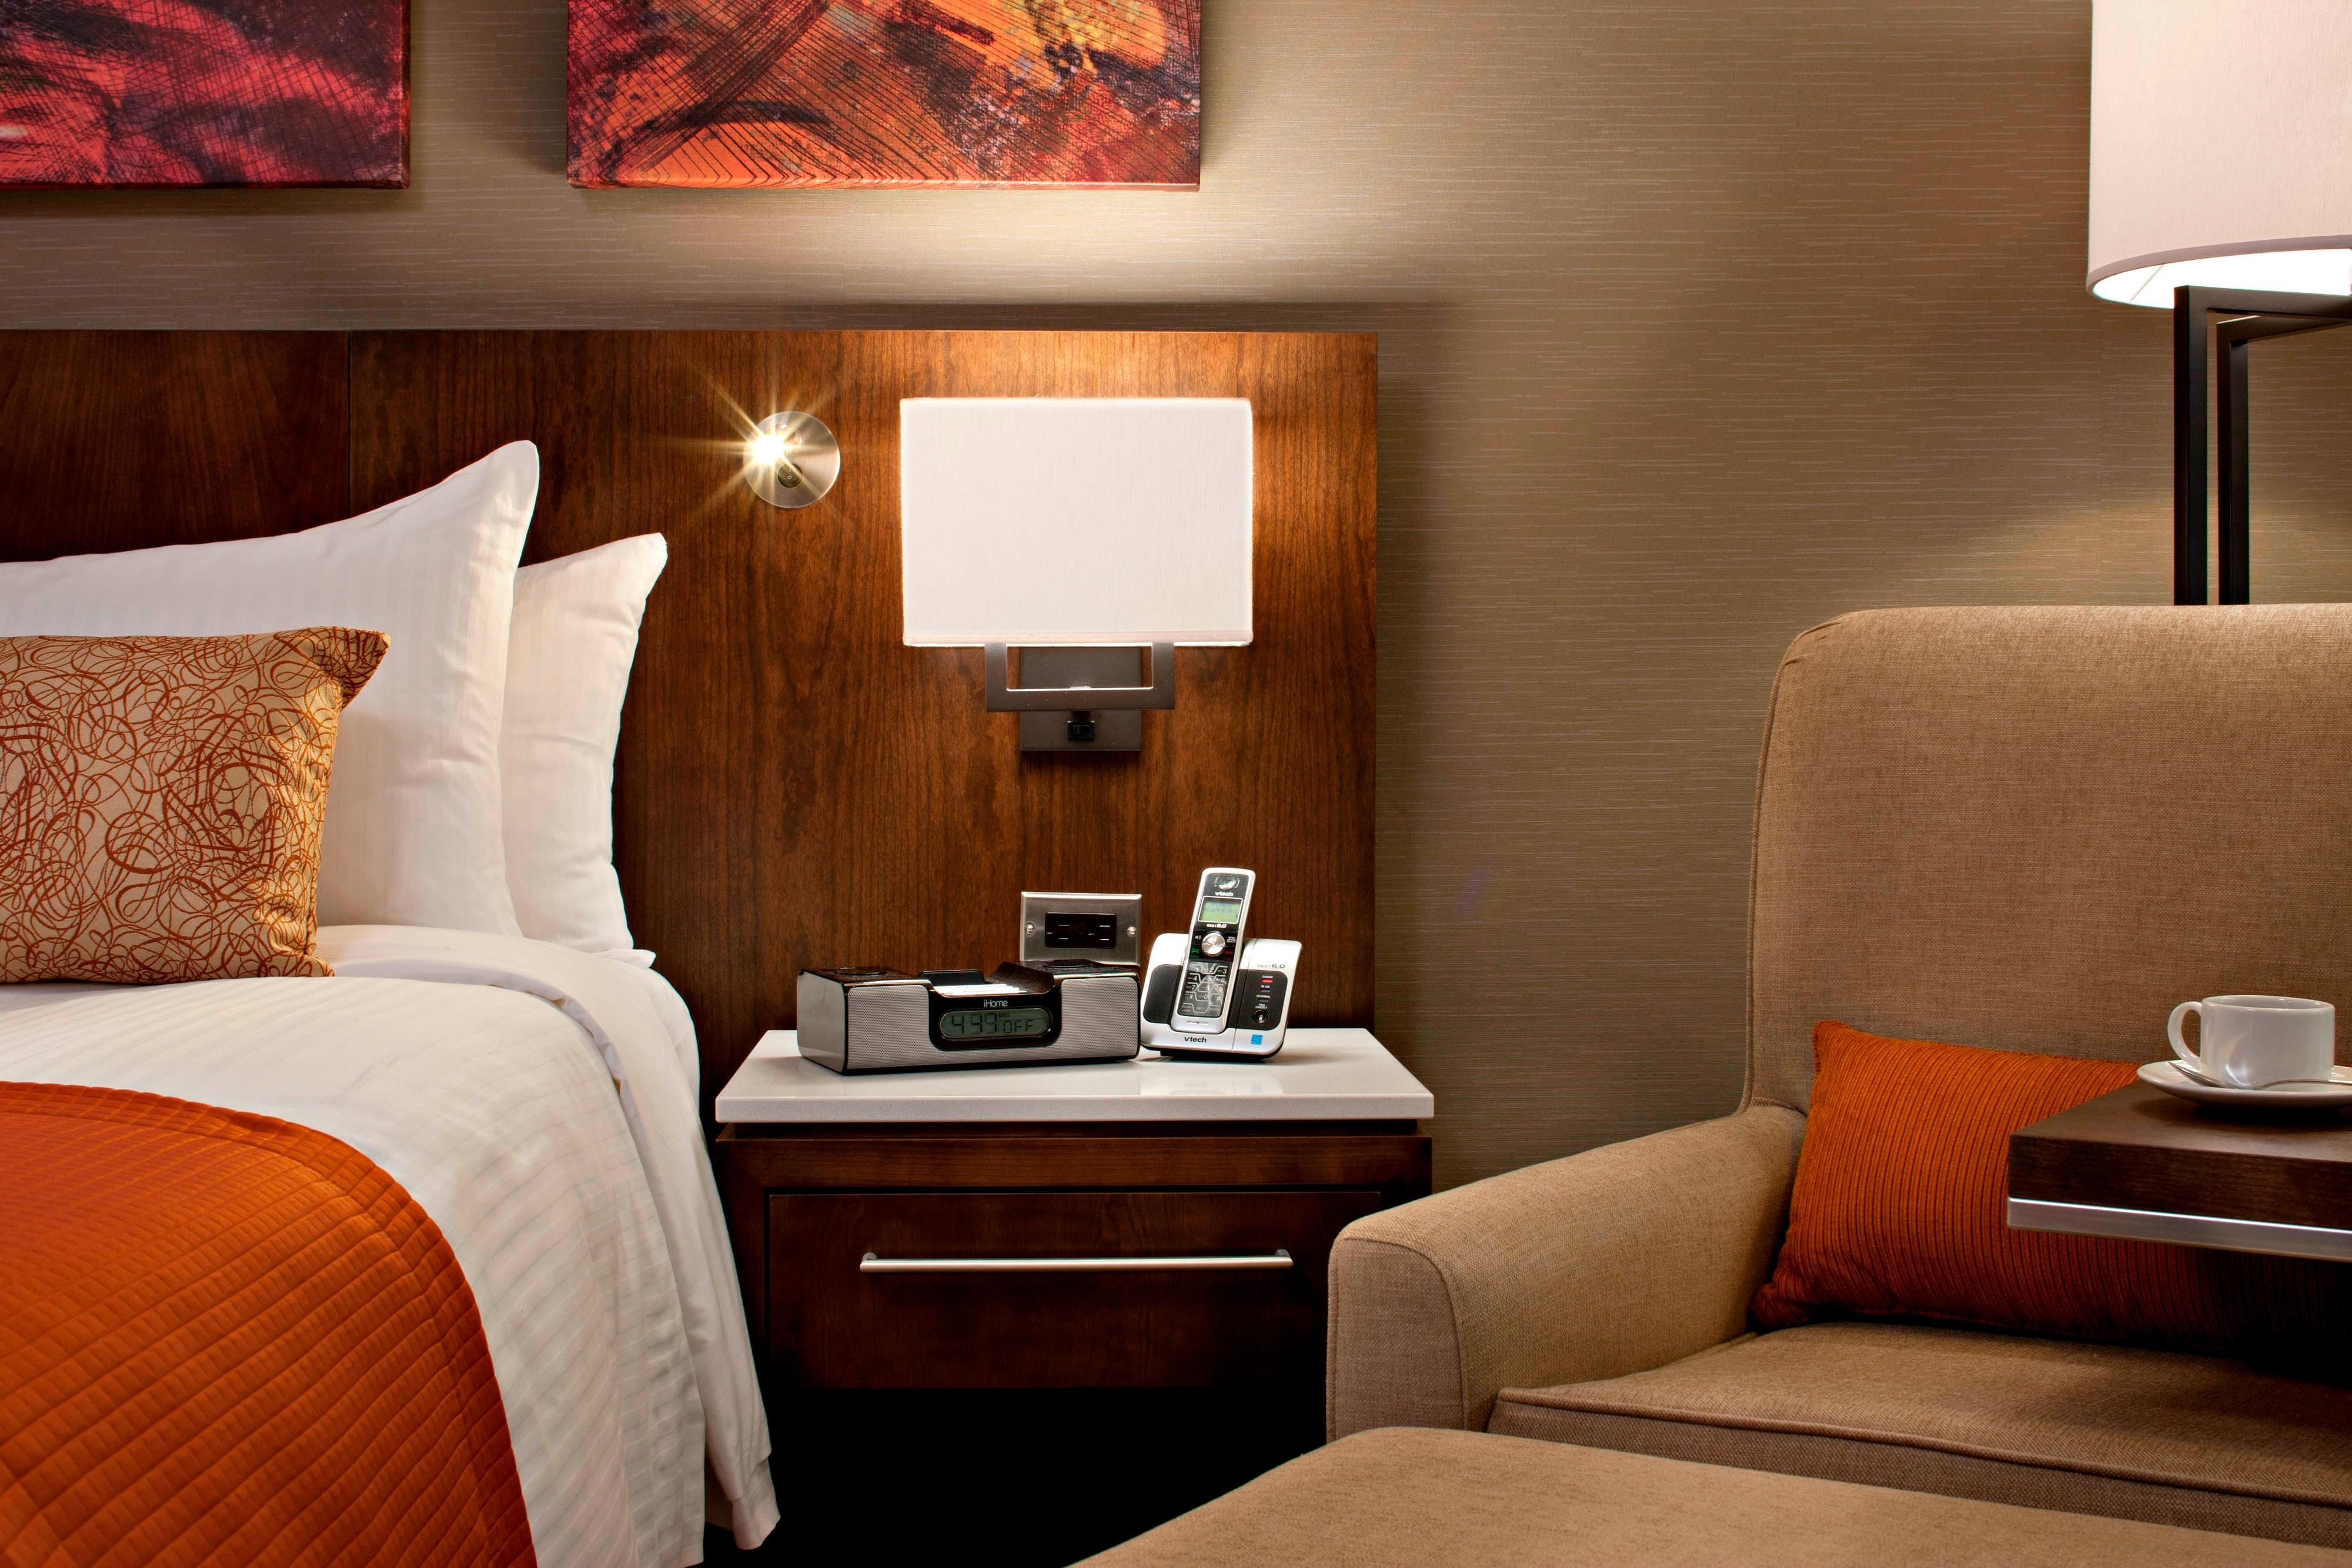 Deluxe Guest Room Amentities